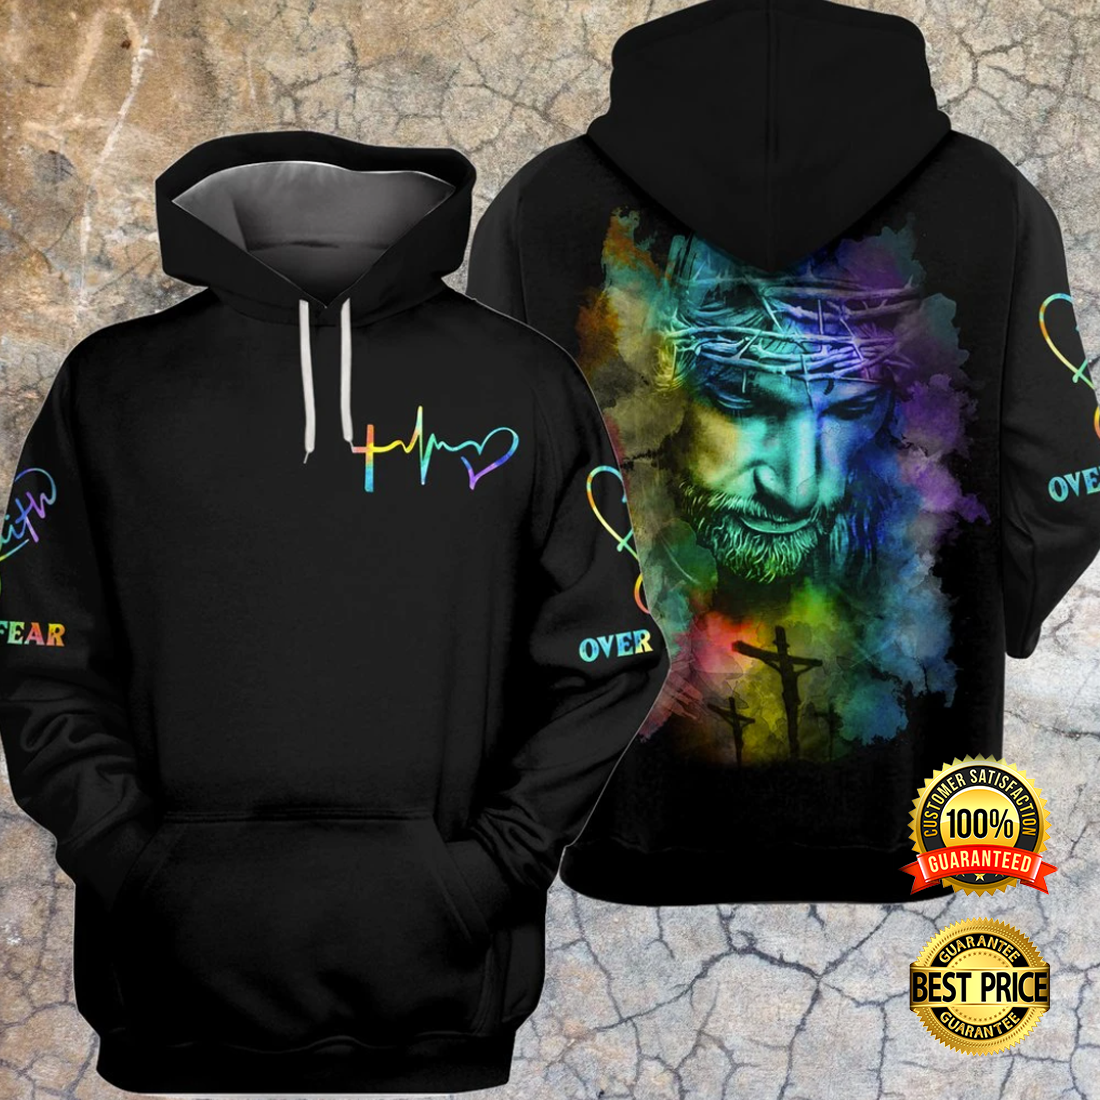 JESUS FAITH OVER FEAR COLORFUL ALL OVER PRINTED 3D HOODIE 5